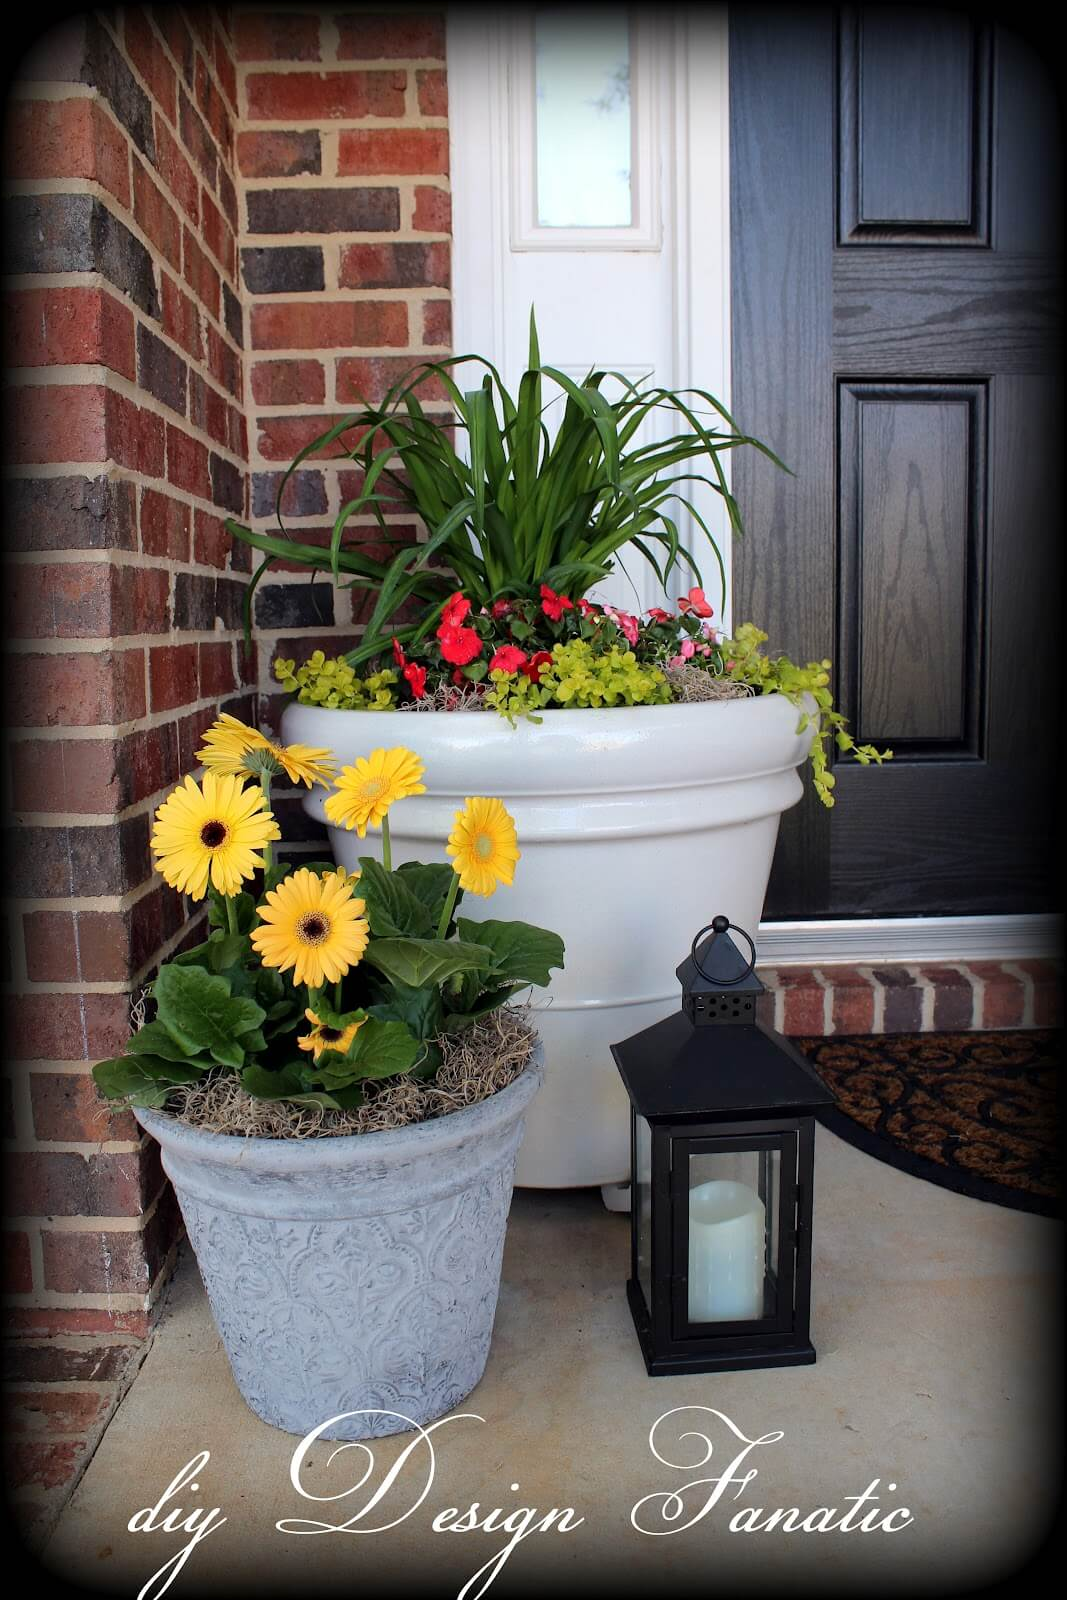 Large Planters with Greens and Gerbera Daisies